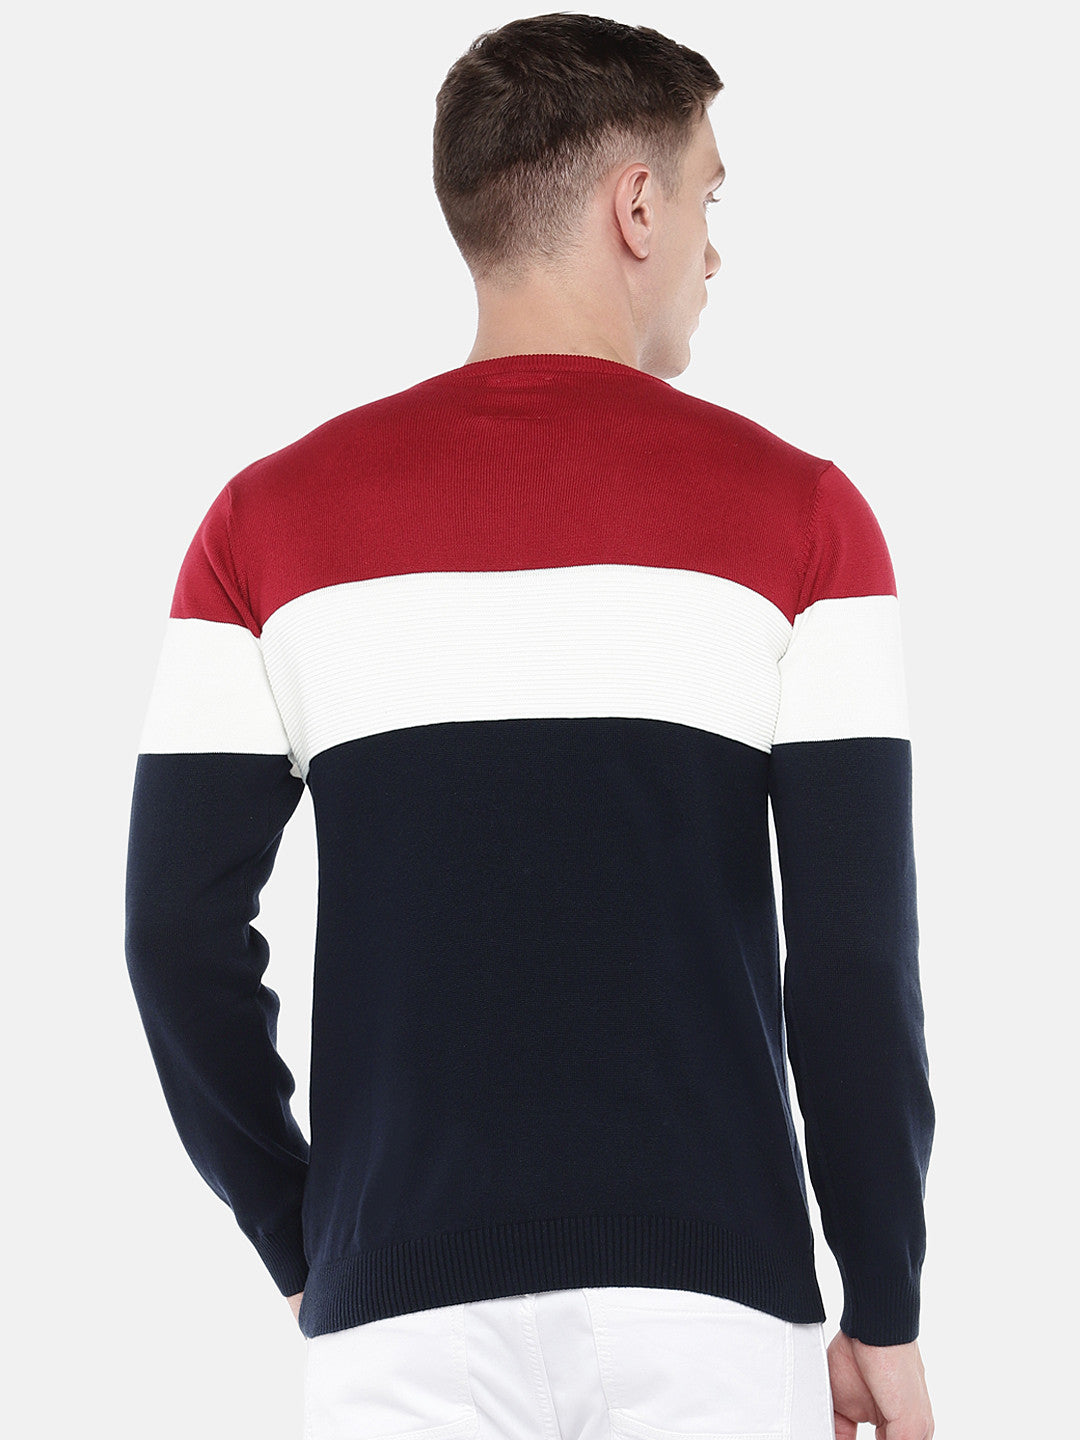 Navy Blue & Red Colourblocked Sweater-3